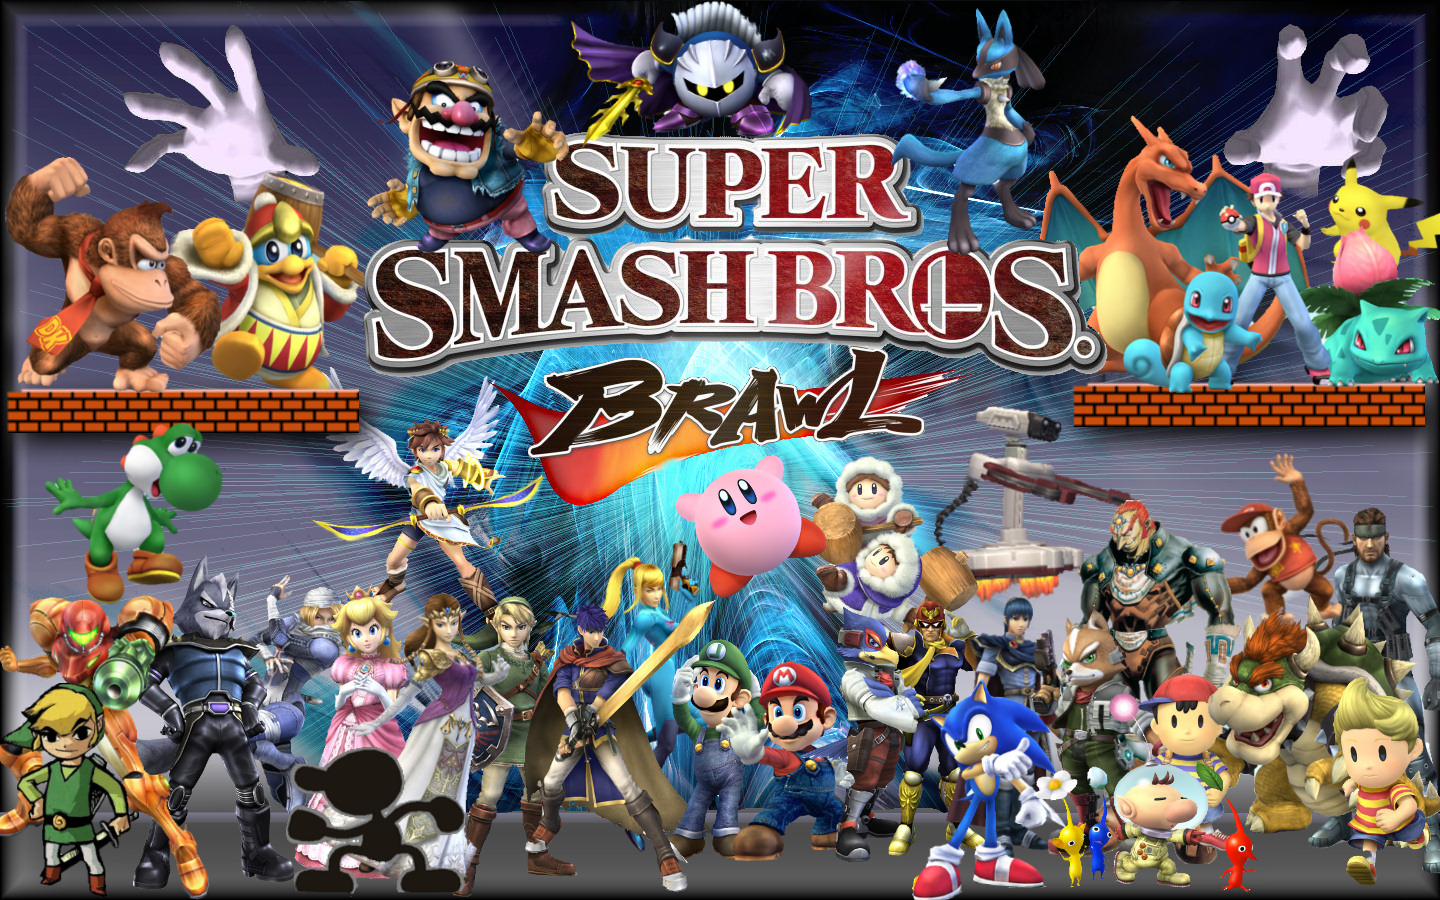 Fuentes de Información - Super smash bros brawl (Wallpapers)